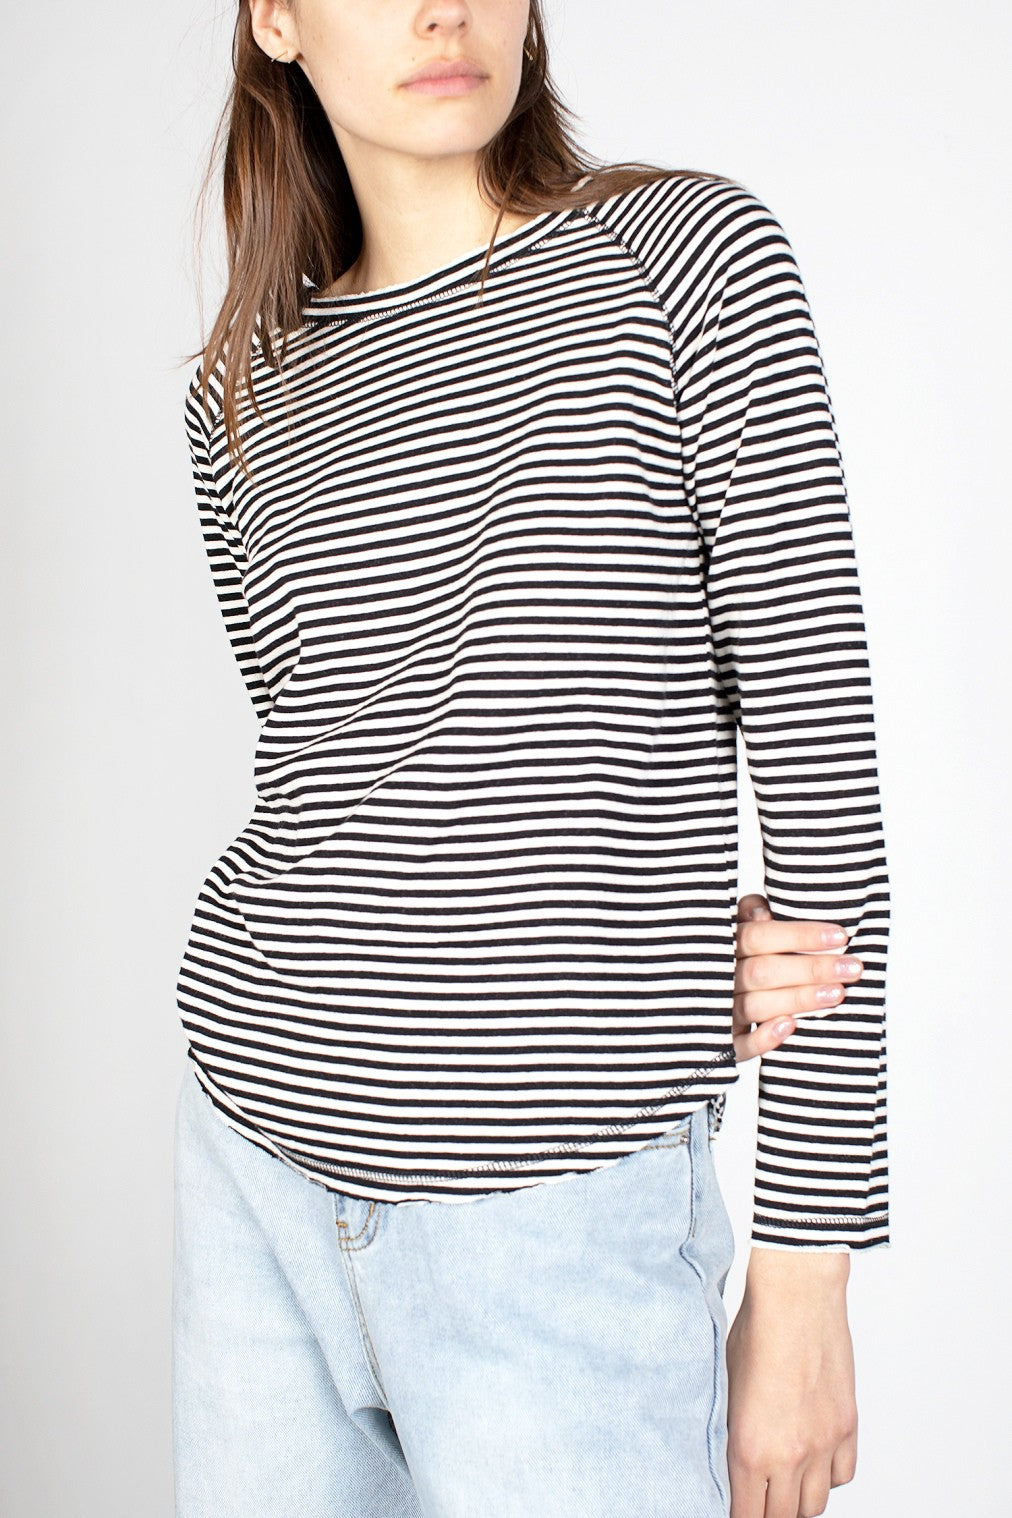 BLACK AND IVORY STRIPED LONG SLEEVE TEE